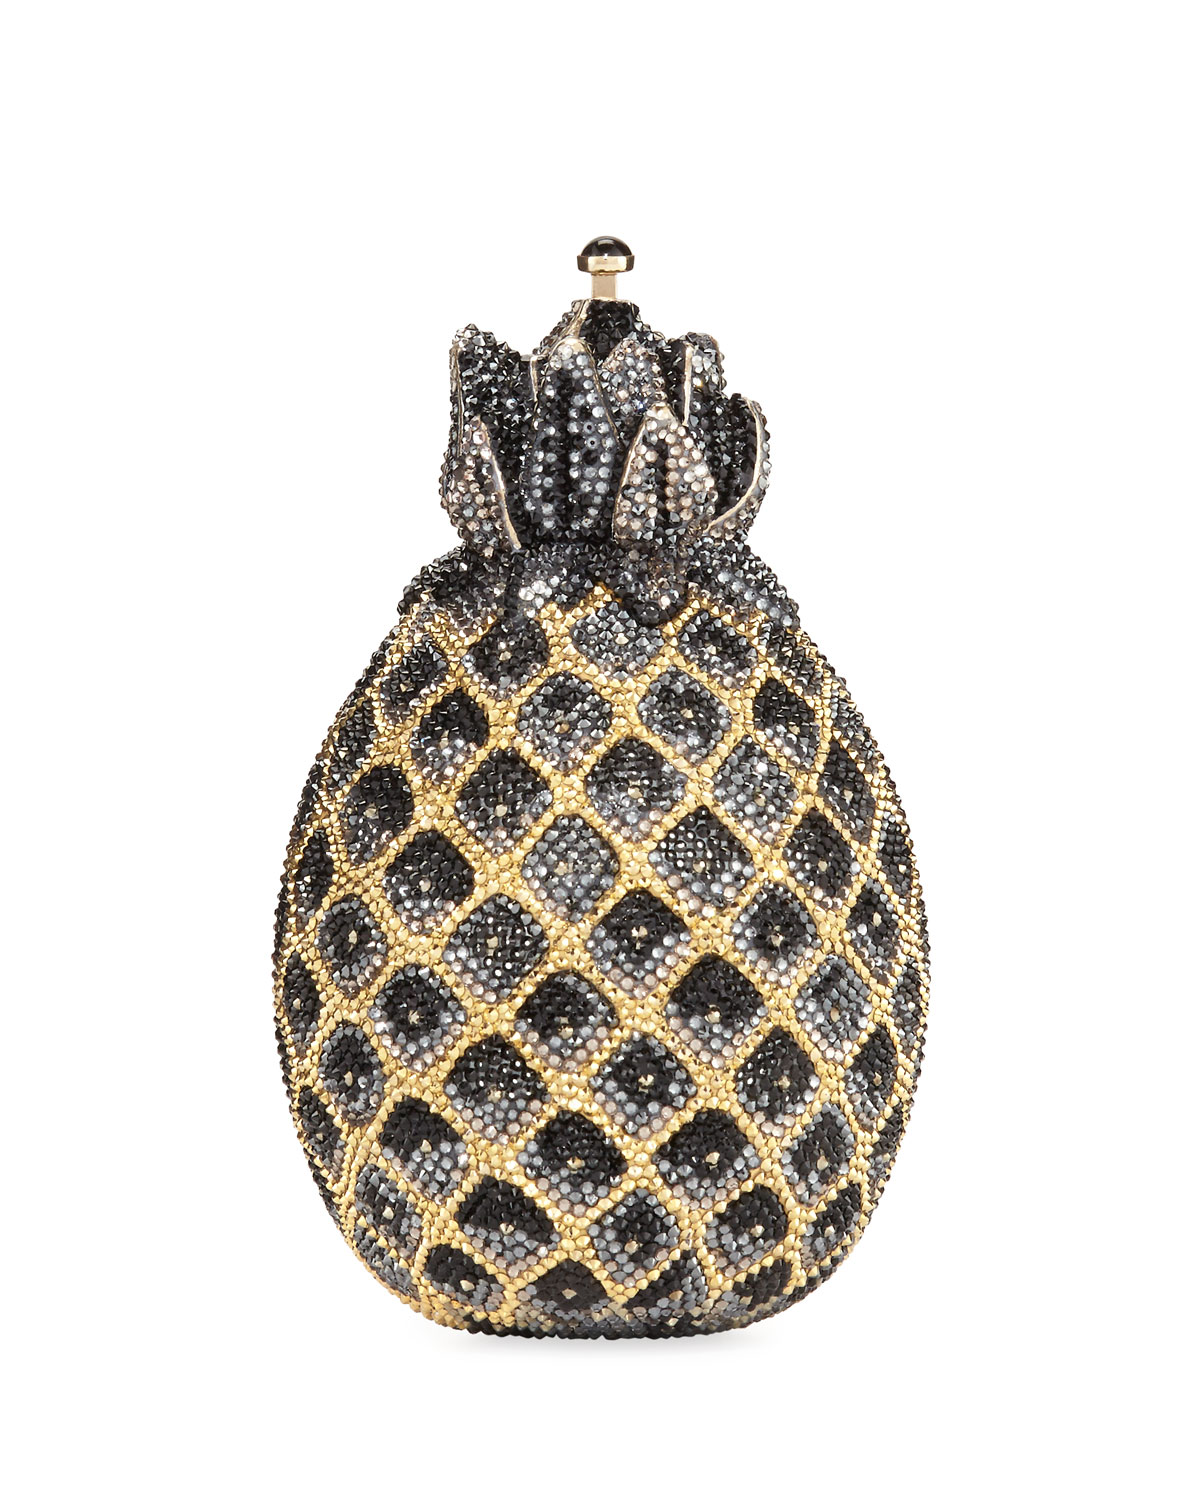 Judith Leiber Couture Hilo Pineapple Crystal Clutch Bag  0c7cdc038c9ae